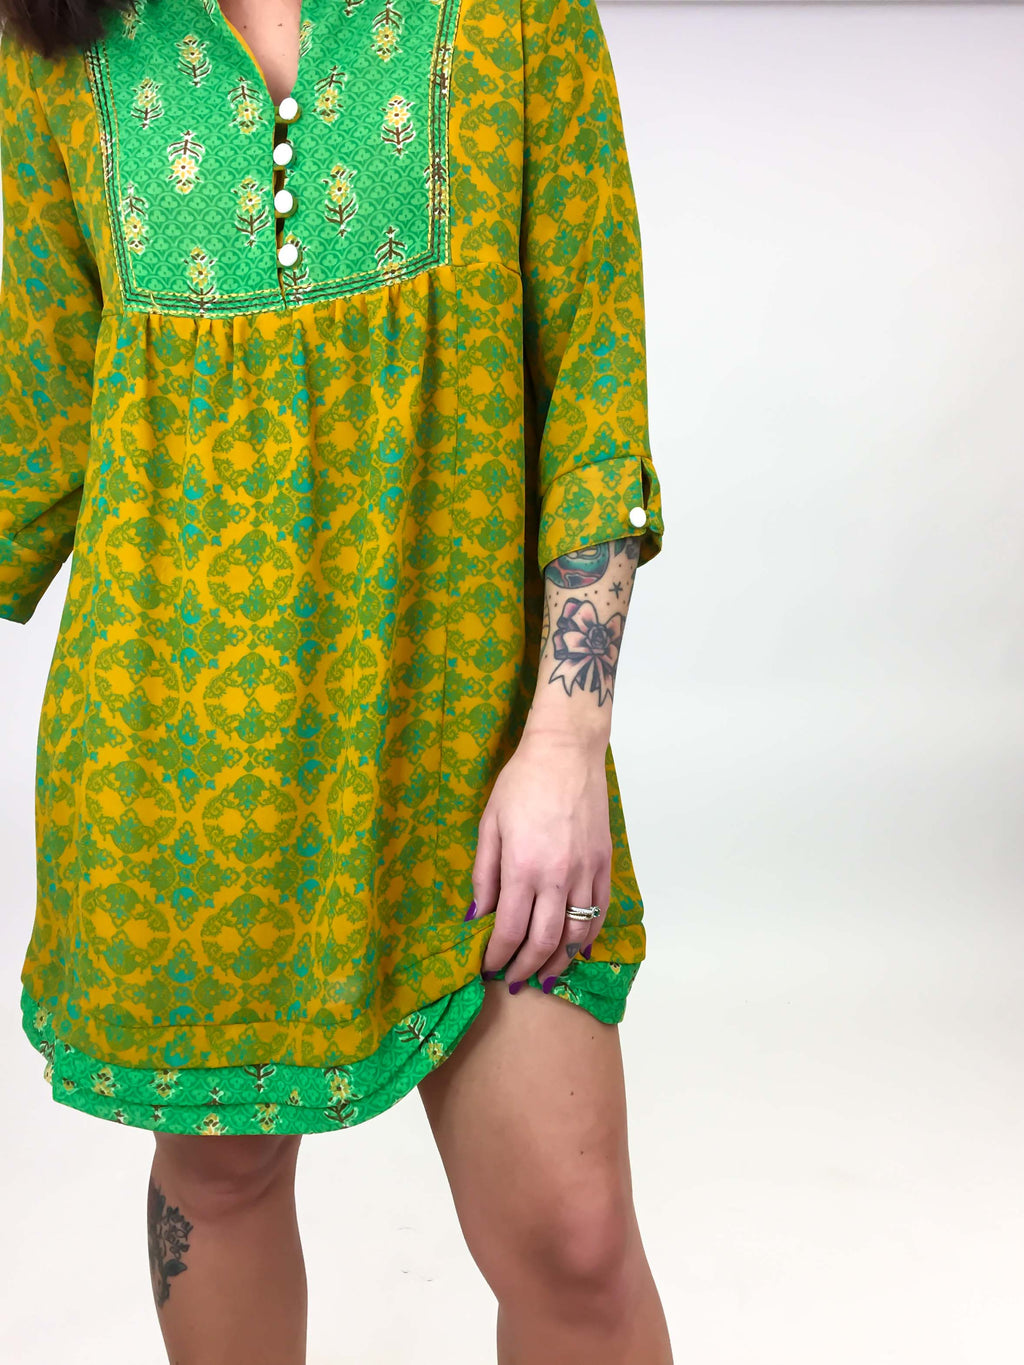 Vintage Biba Dress : Small : The Biba Dress